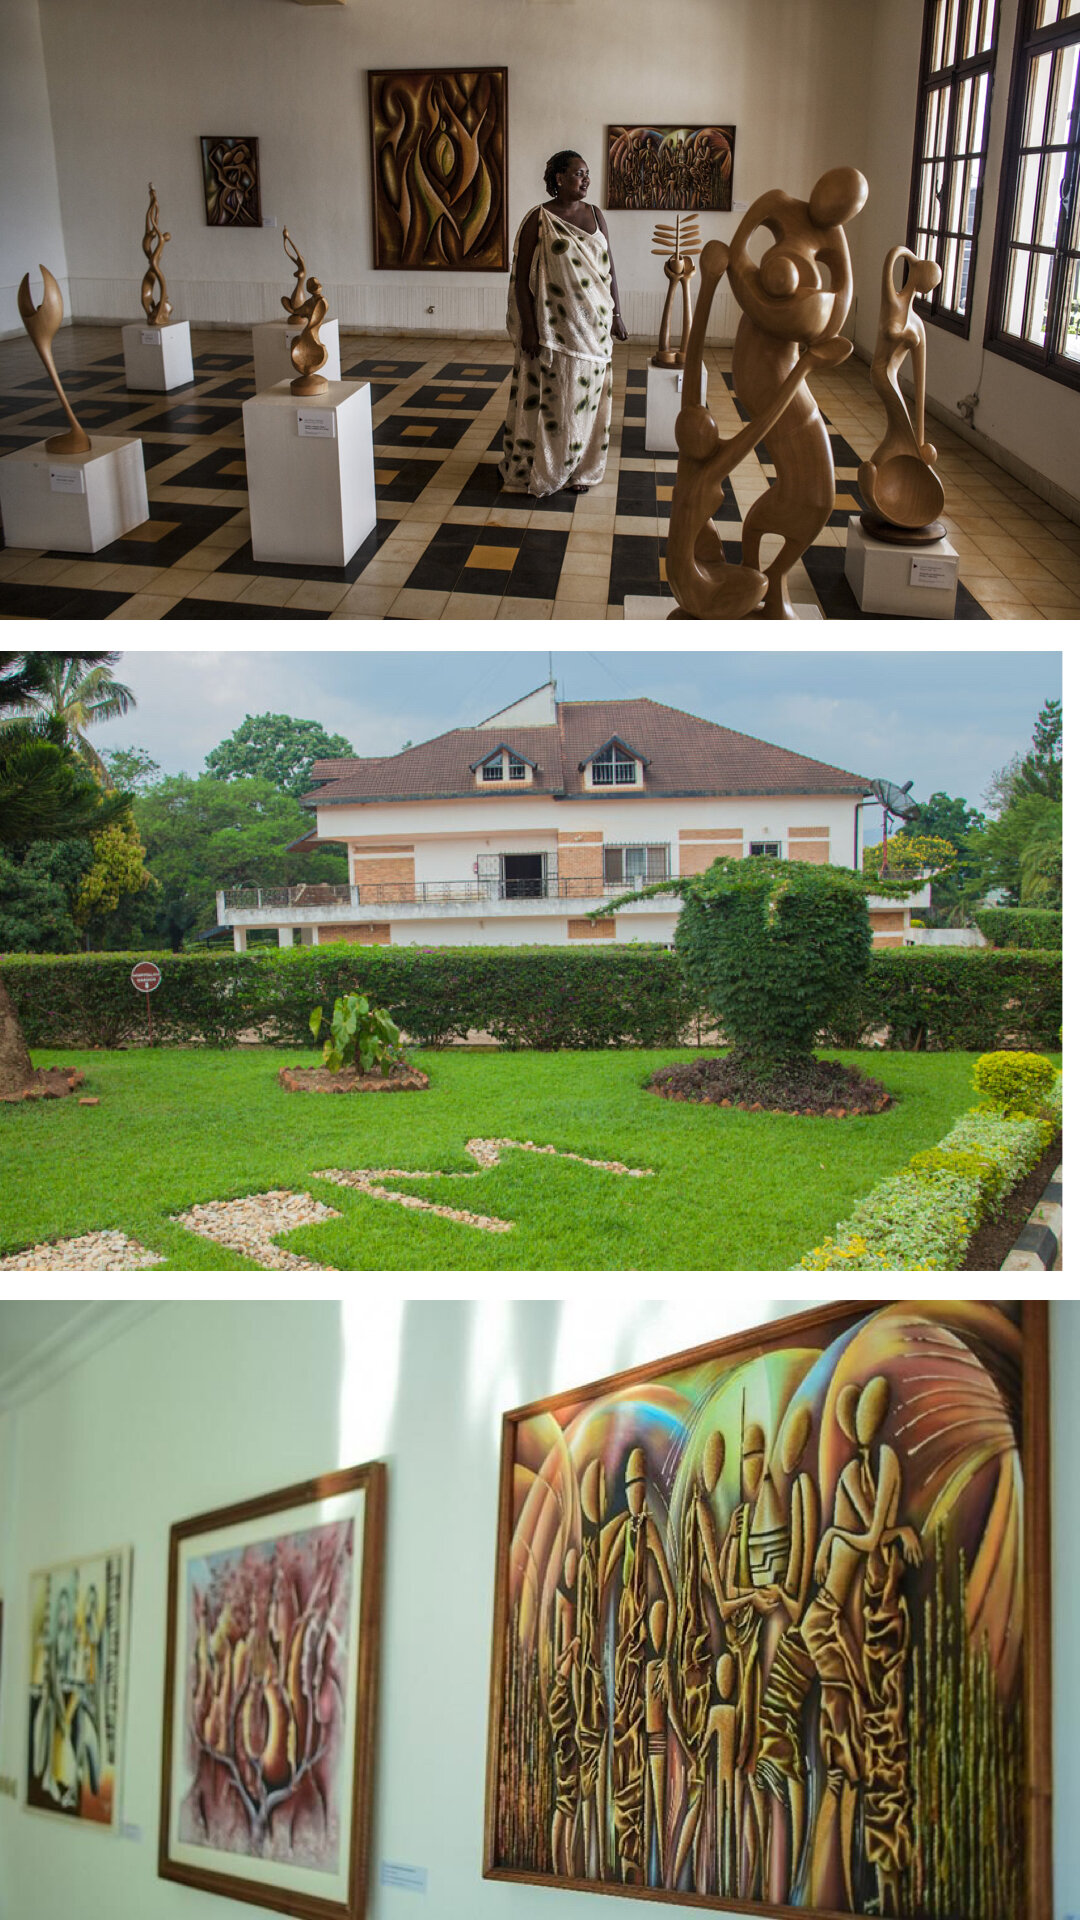 16.AND then pay a visit to the rwanda art museum